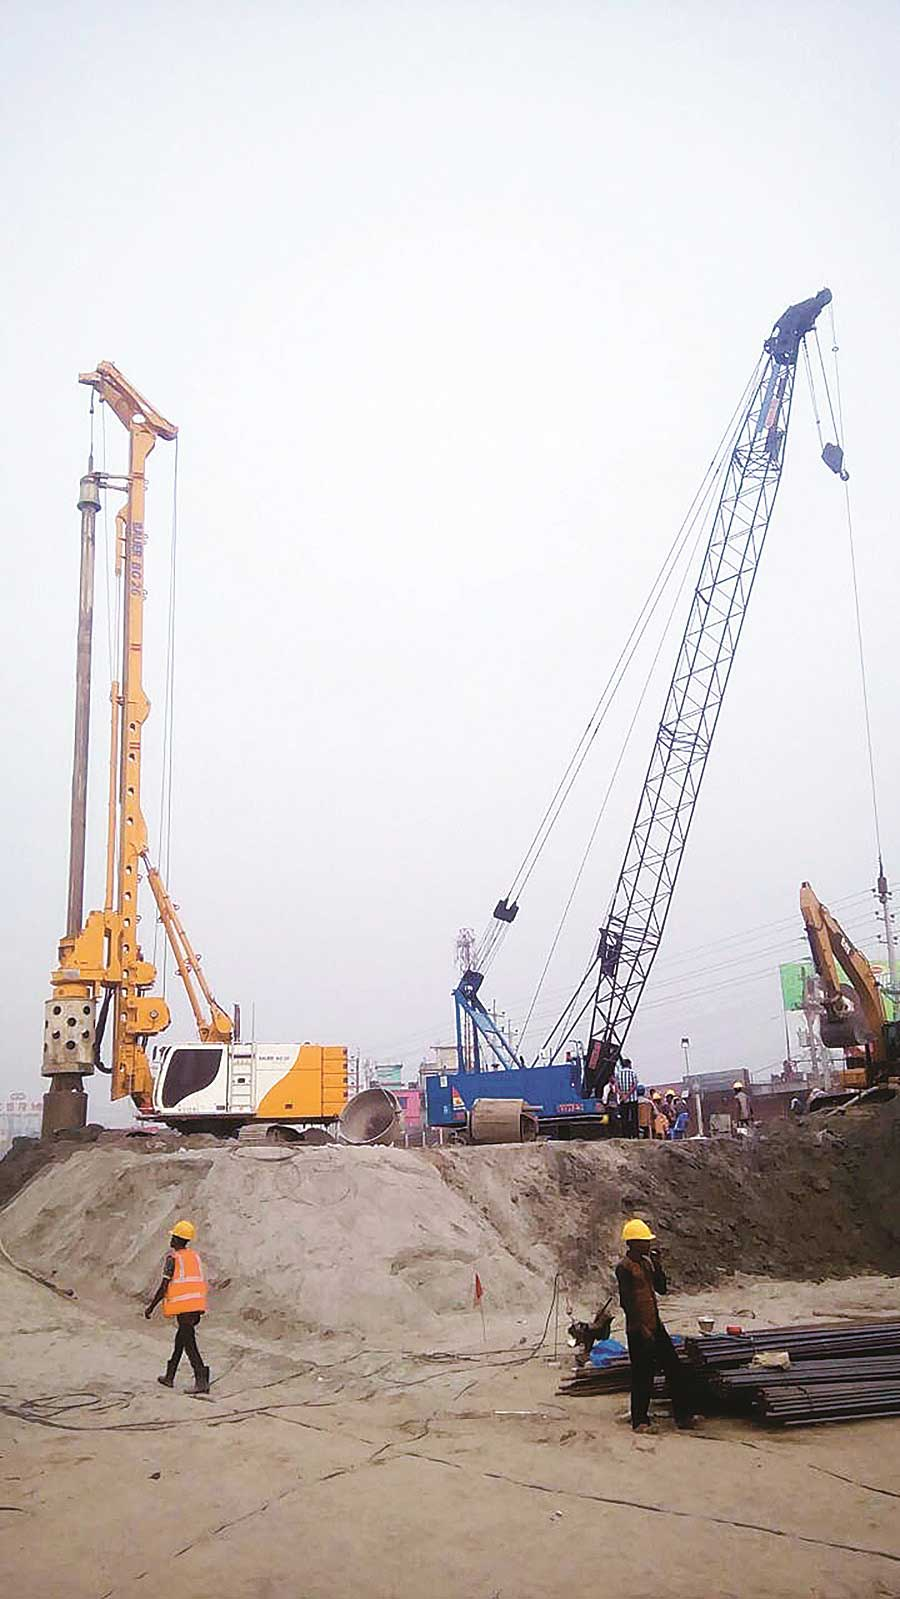 Construction of 1200 φ bored pile for Tegharia Interchange on N8 Project.